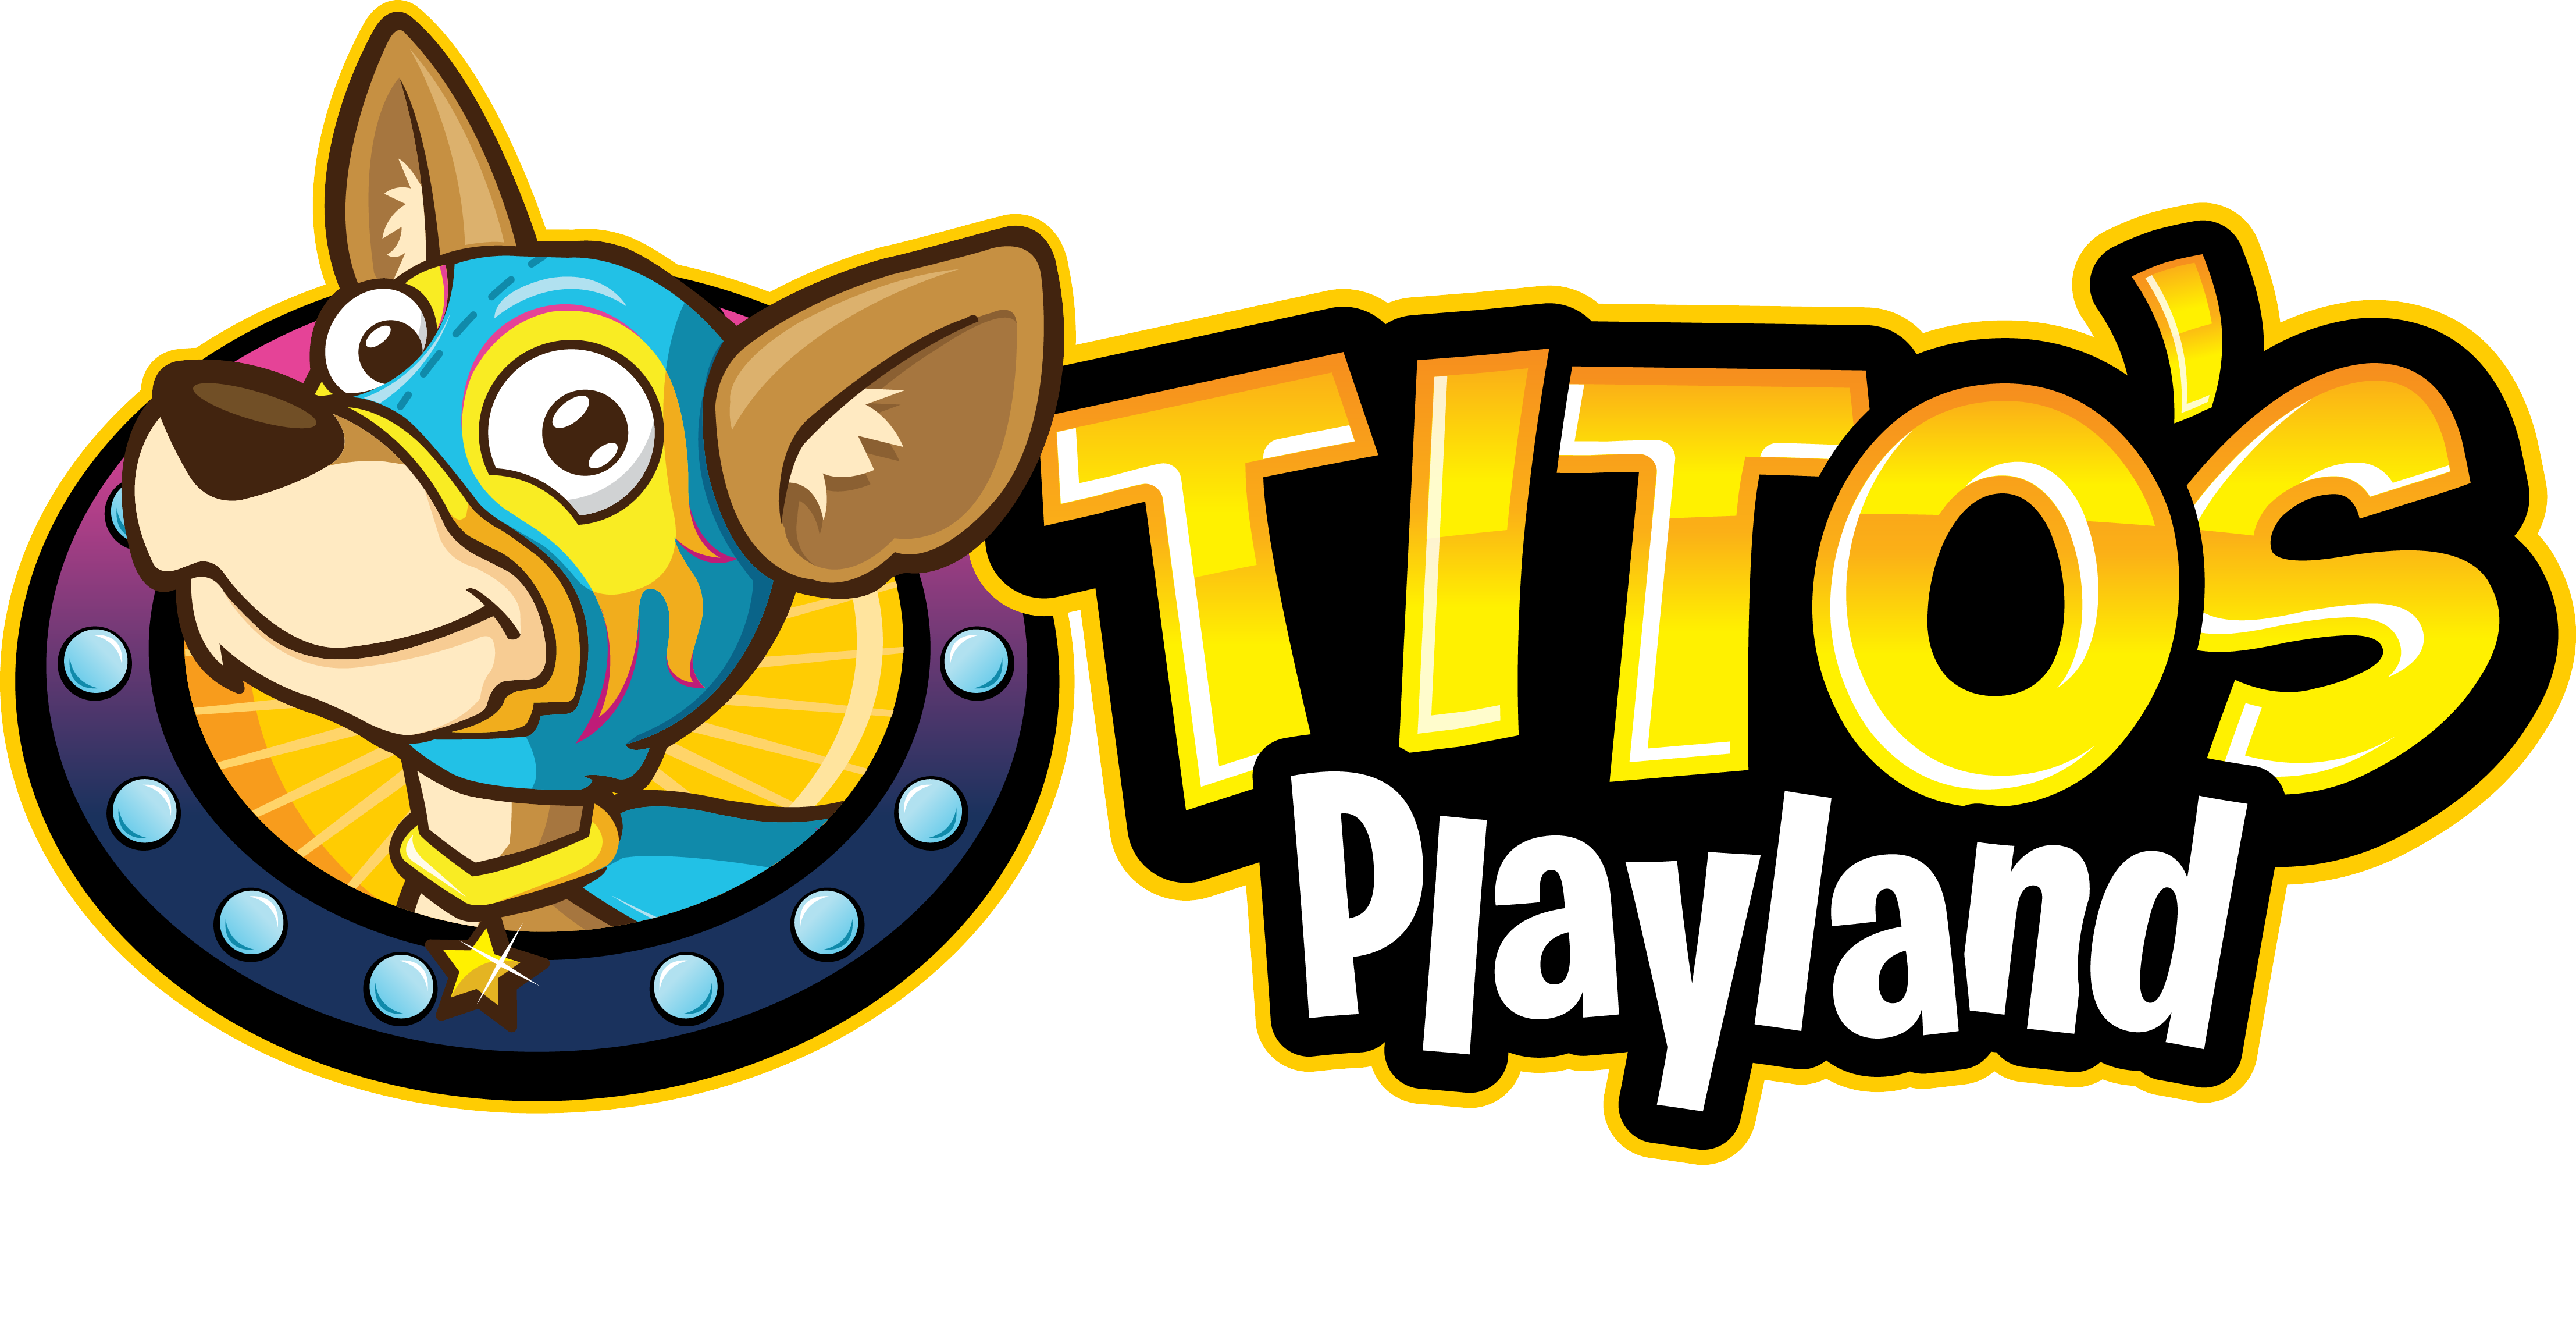 Play All Day at Tito's Playland